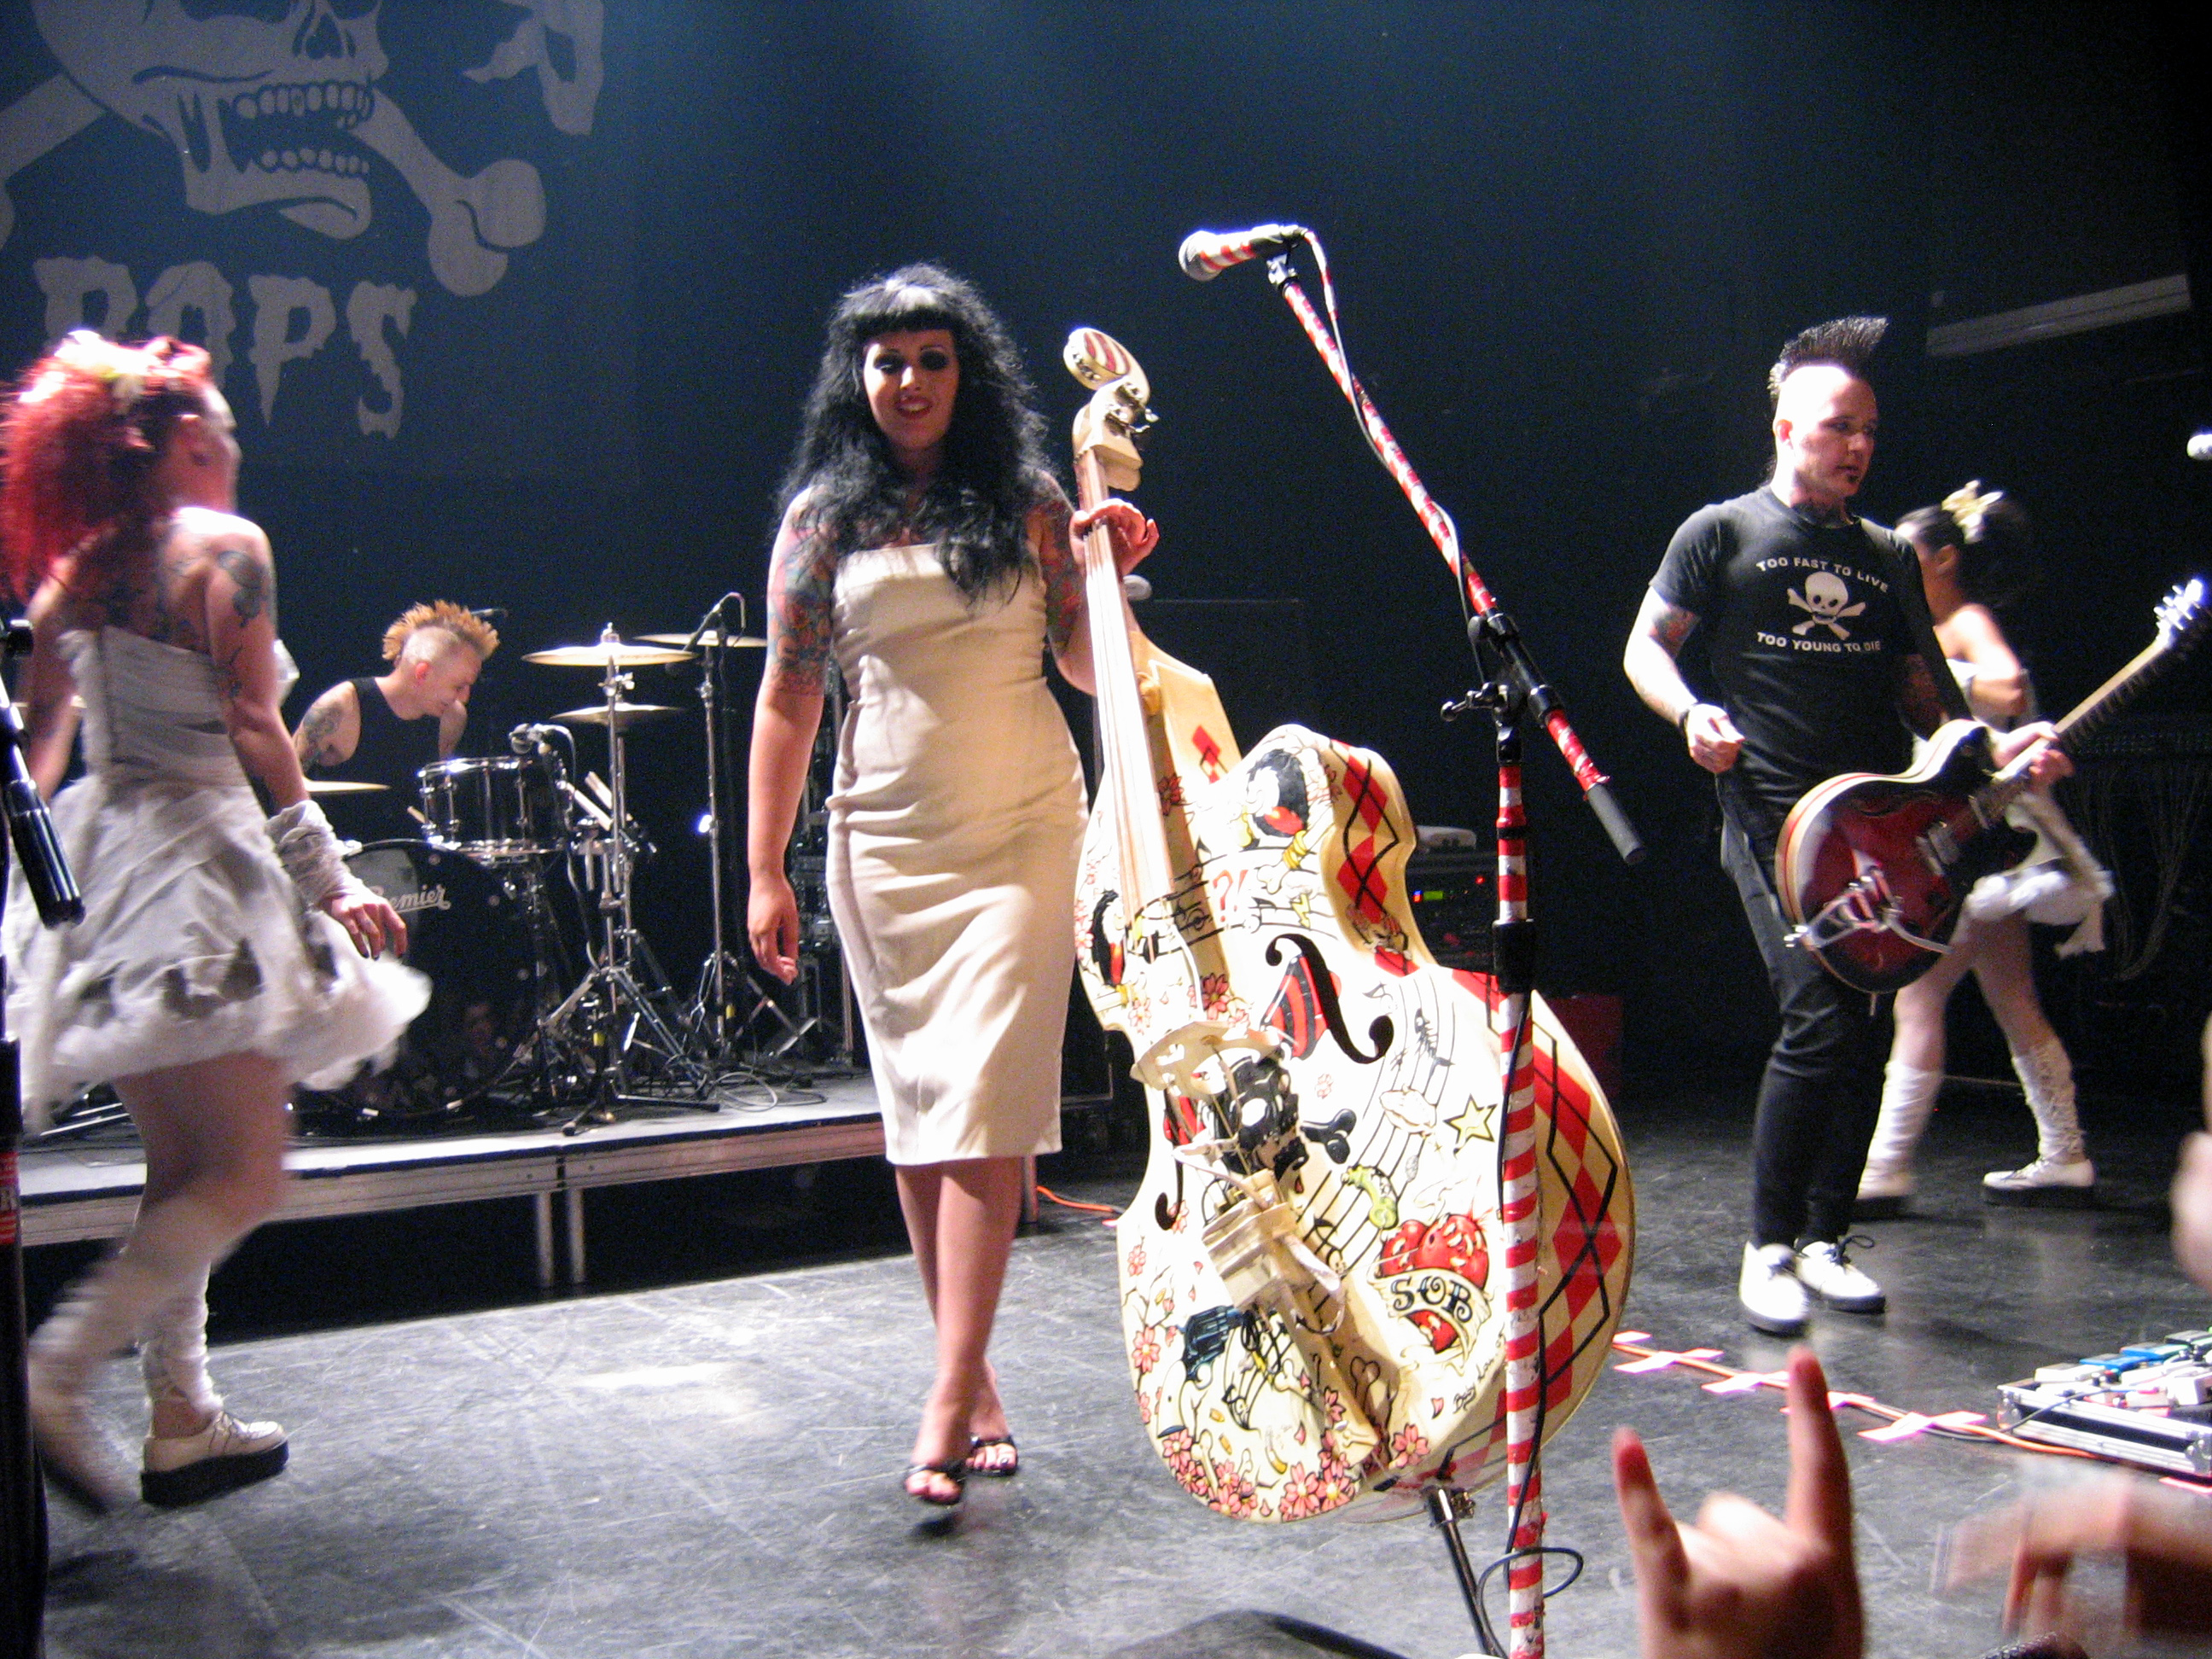 The bassist for psychobilly band The HorrorPops